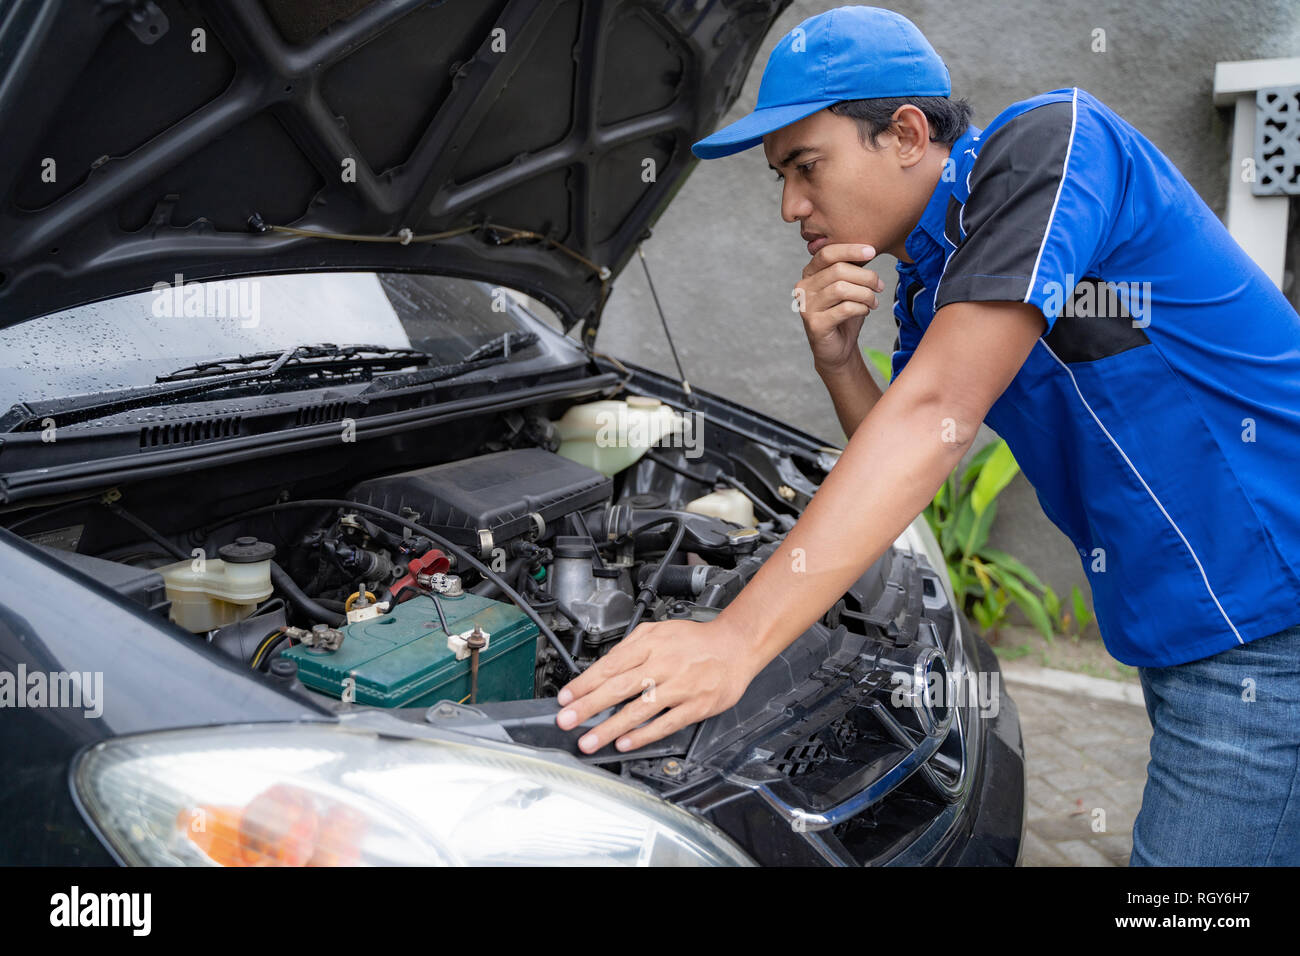 mechanic doing some inspection on car's engine  - Stock Image